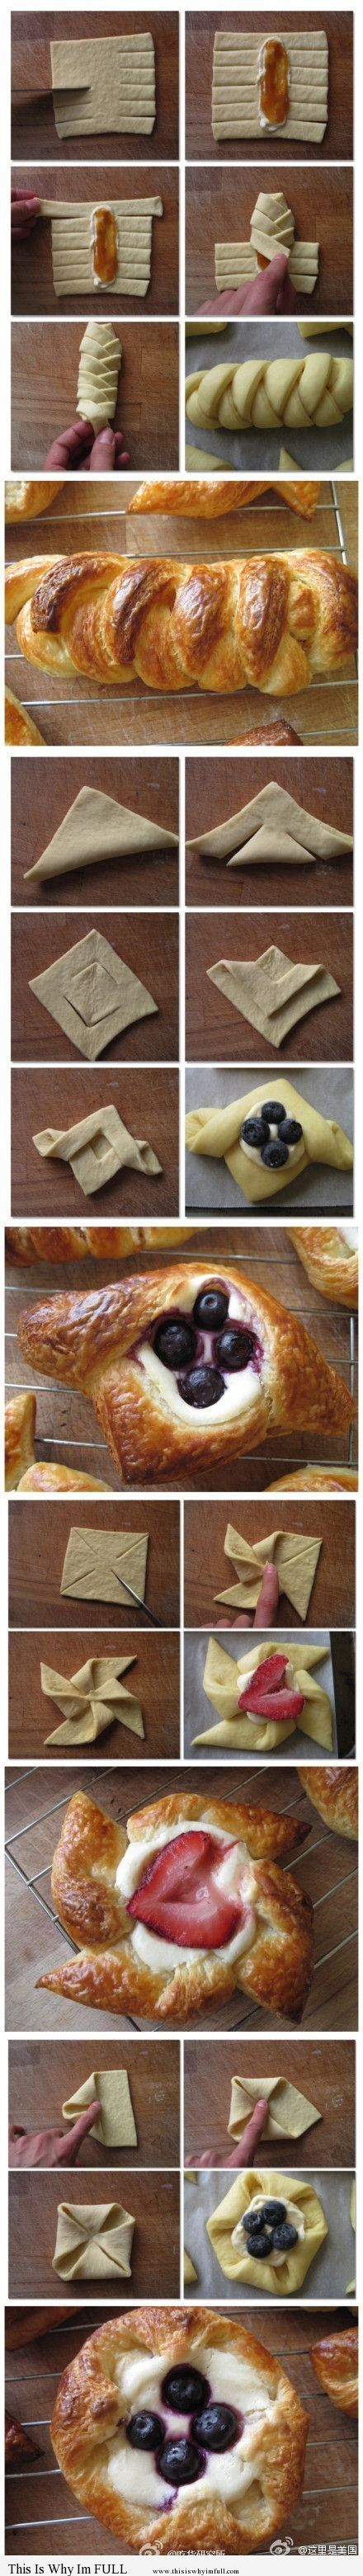 Step by Step Fancy Danish for your next brunch party!